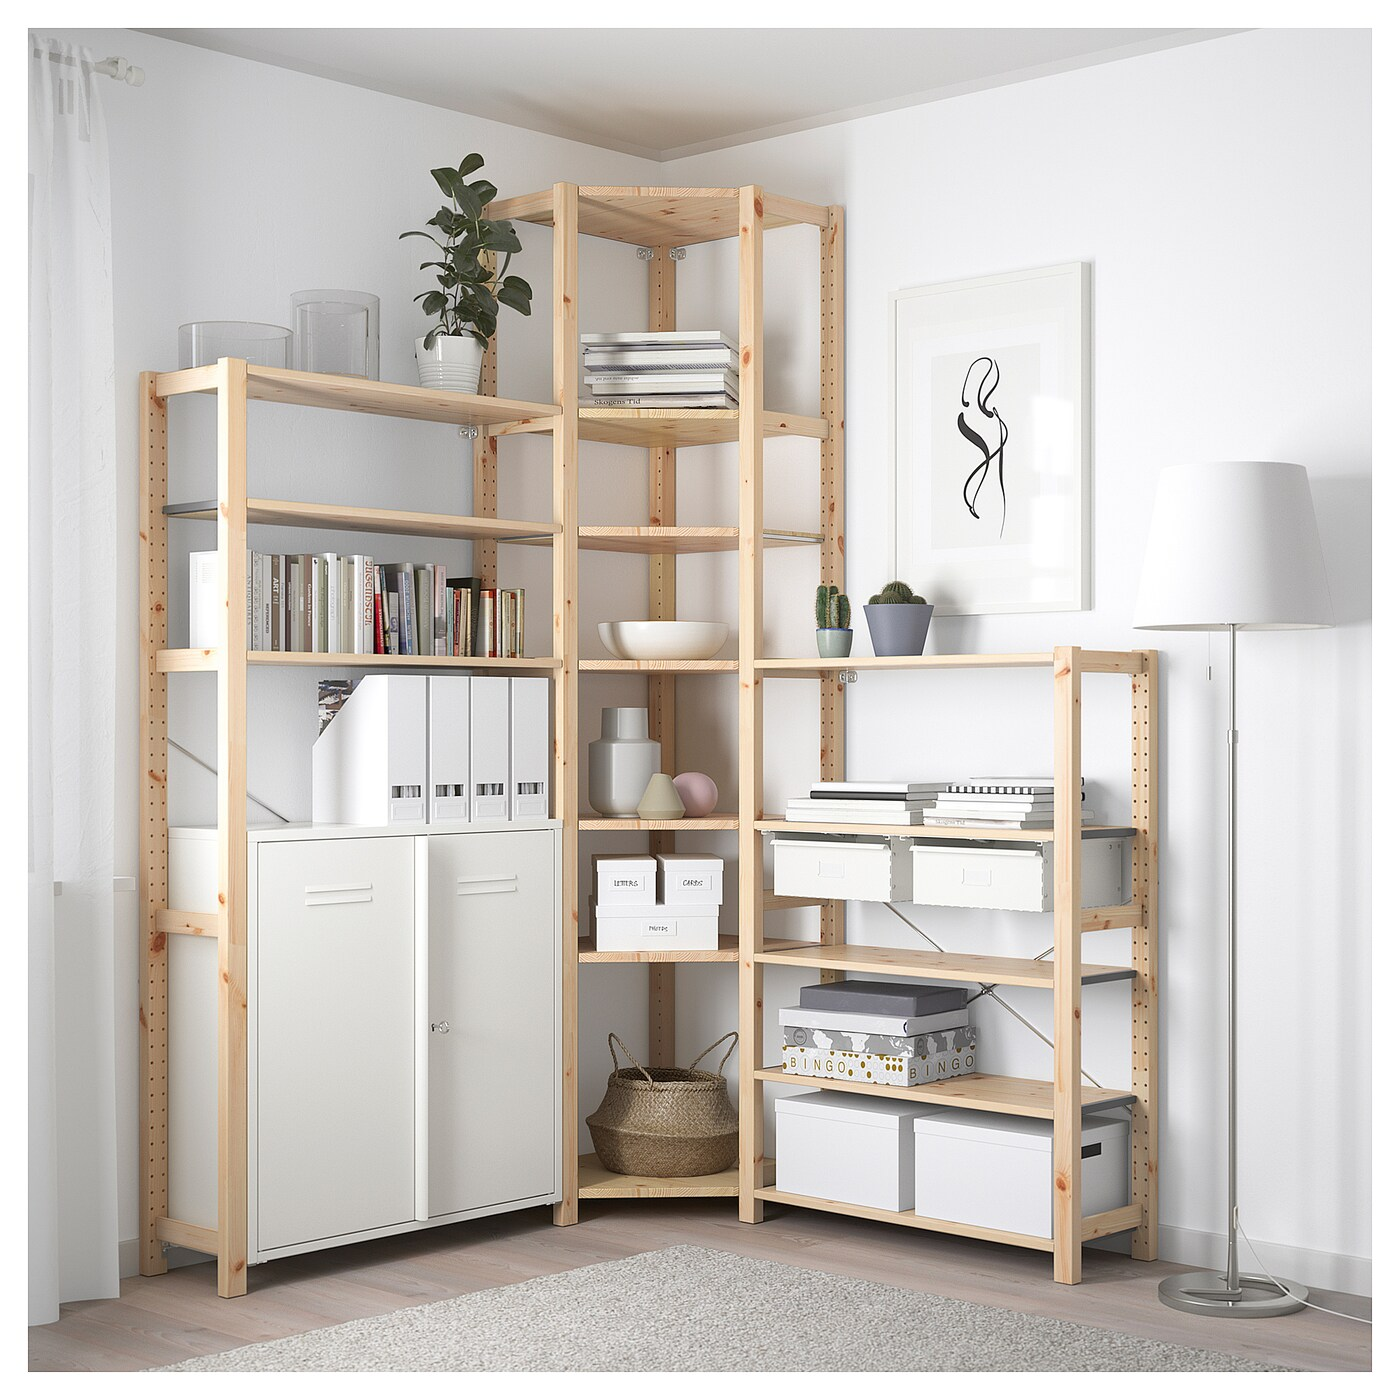 String Regal Ecke Free Try Out Of Window Bookcase From Cattelan Italia In 3d